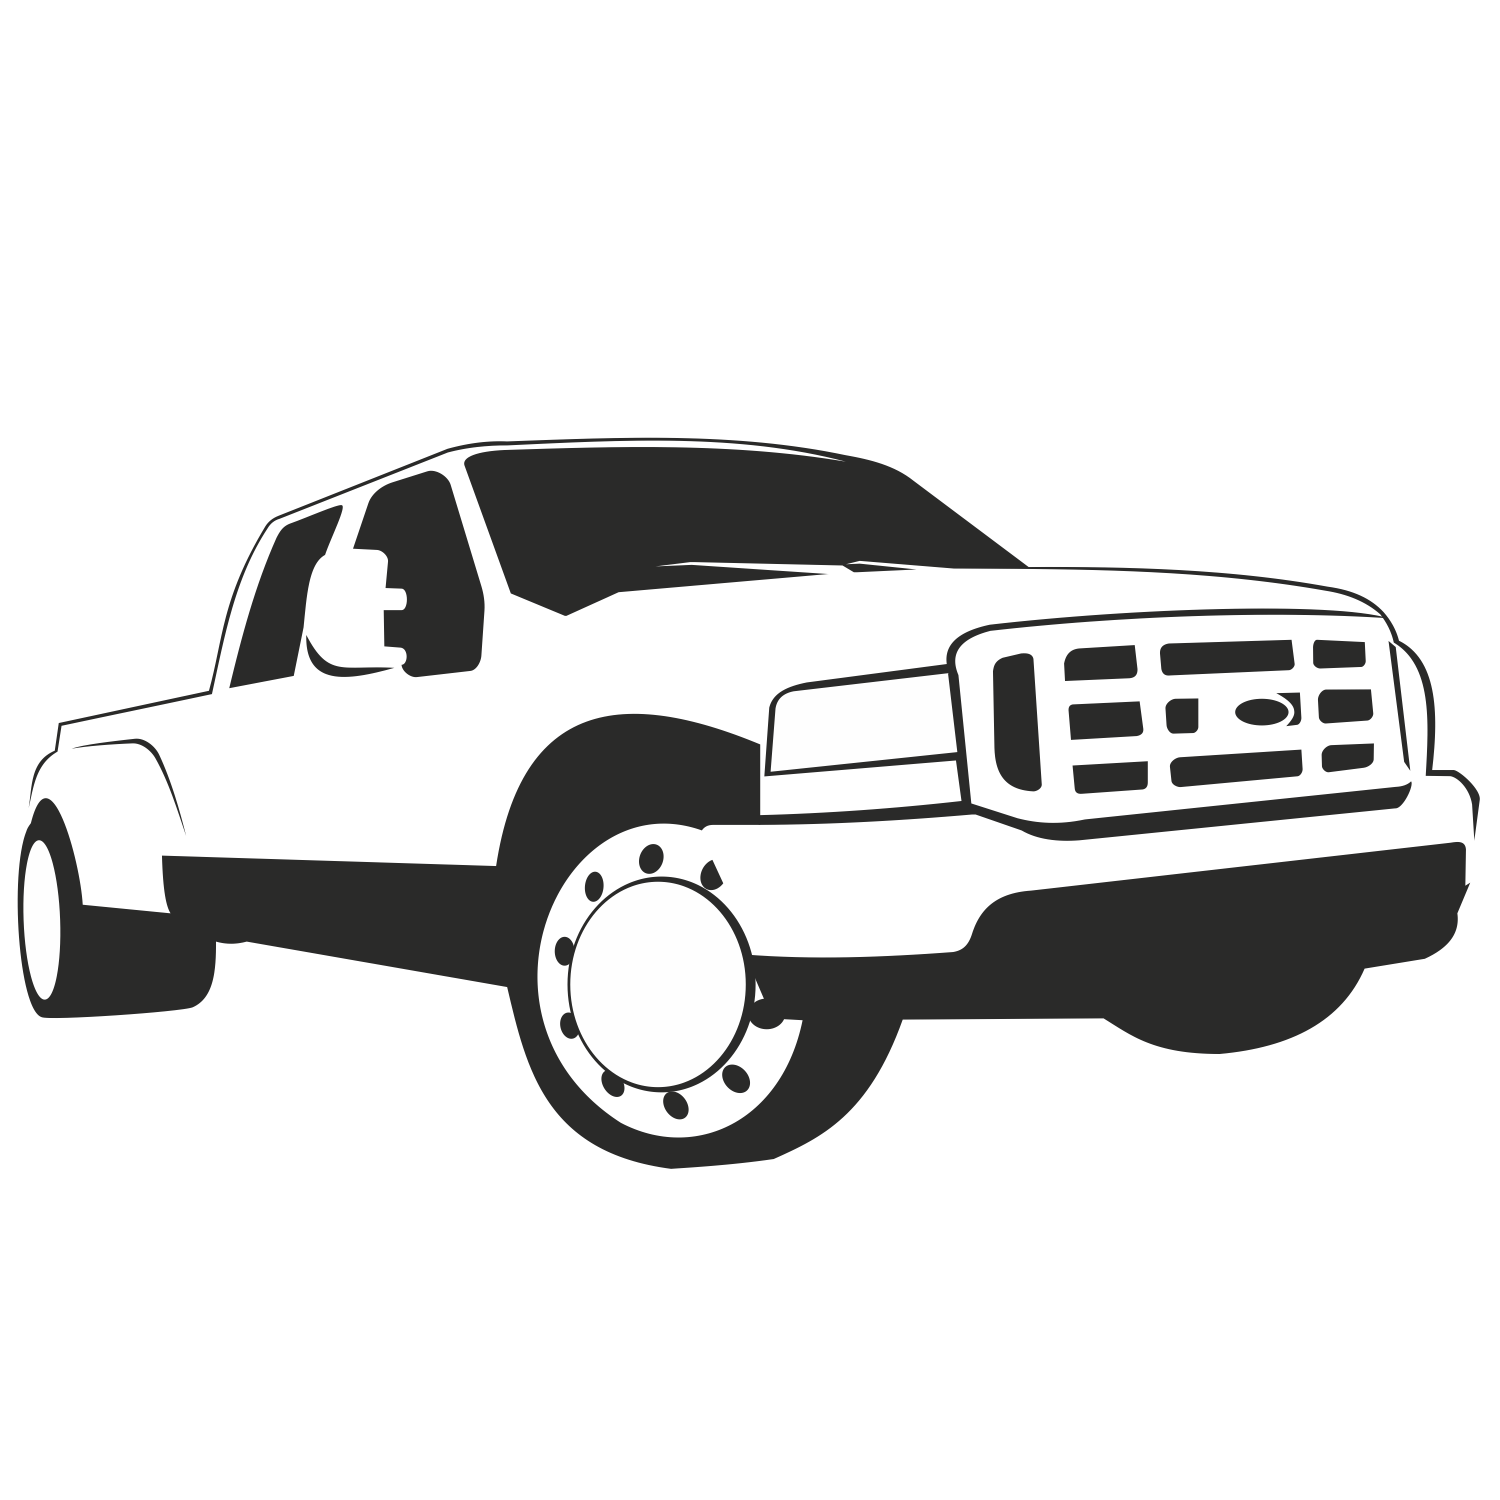 1194963 Ford Van Frame Dimensions in addition Cummins Diesel together with 1990 Ford F150 Radio Wiring Diagram together with Ford F150 How To Check Your Transmission Fluid 356898 in addition 952566 Headlight Wiring Diagram 02 F250 W Drl. on 2014 ford ranger truck